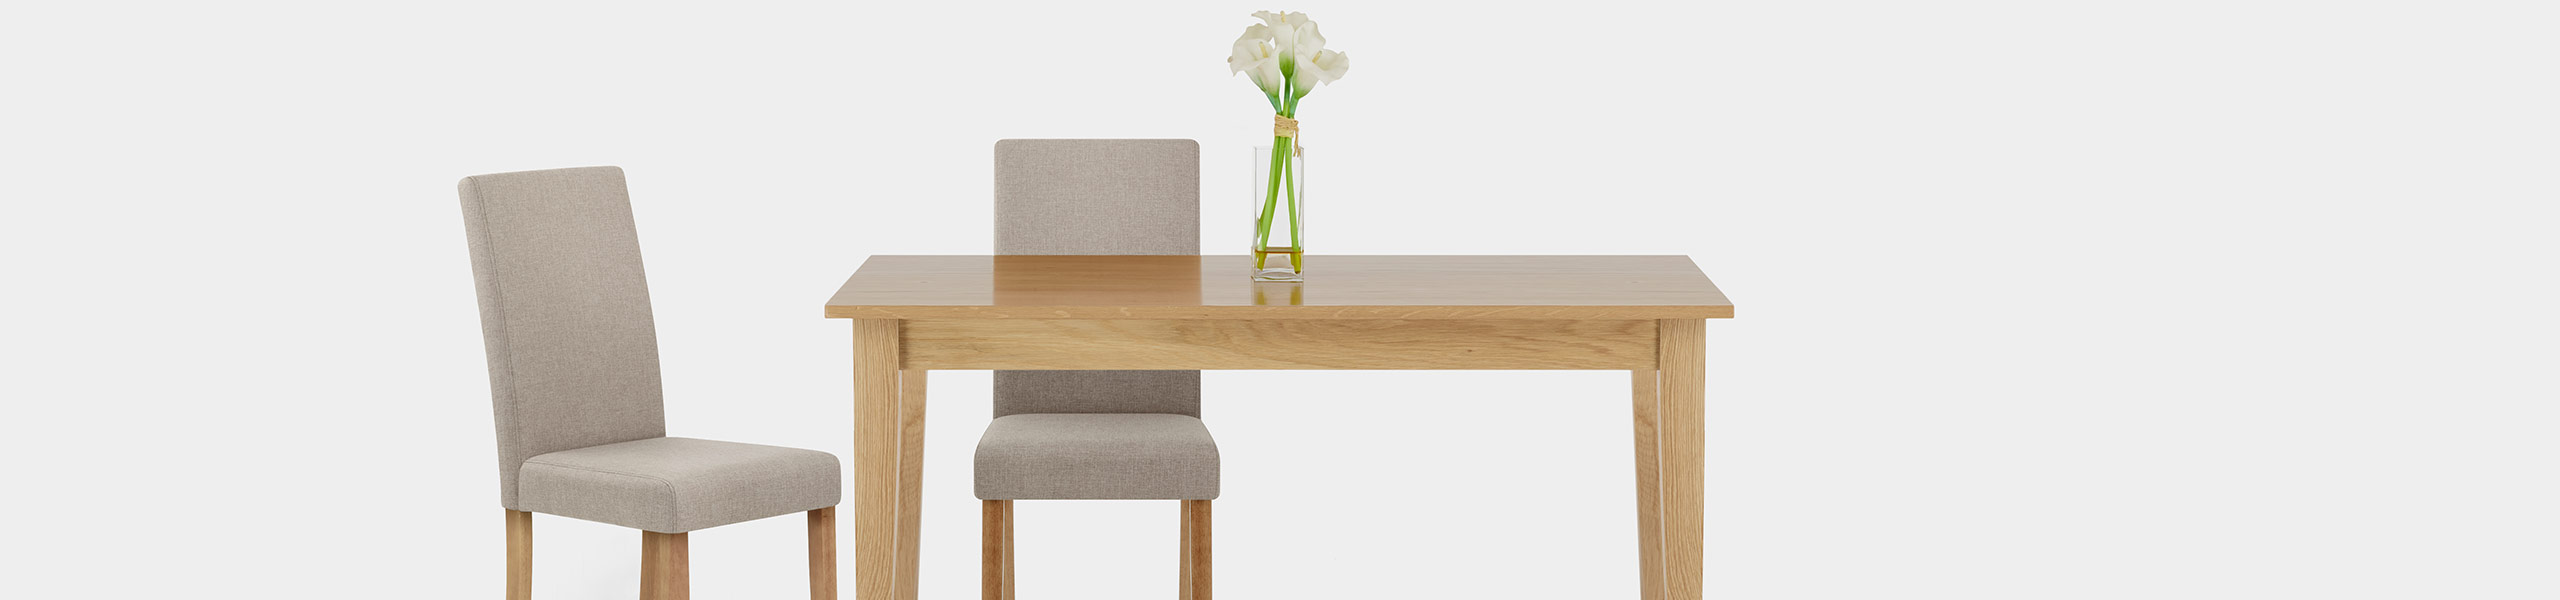 Columbus Oak Dining Chair Tweed Video Banner